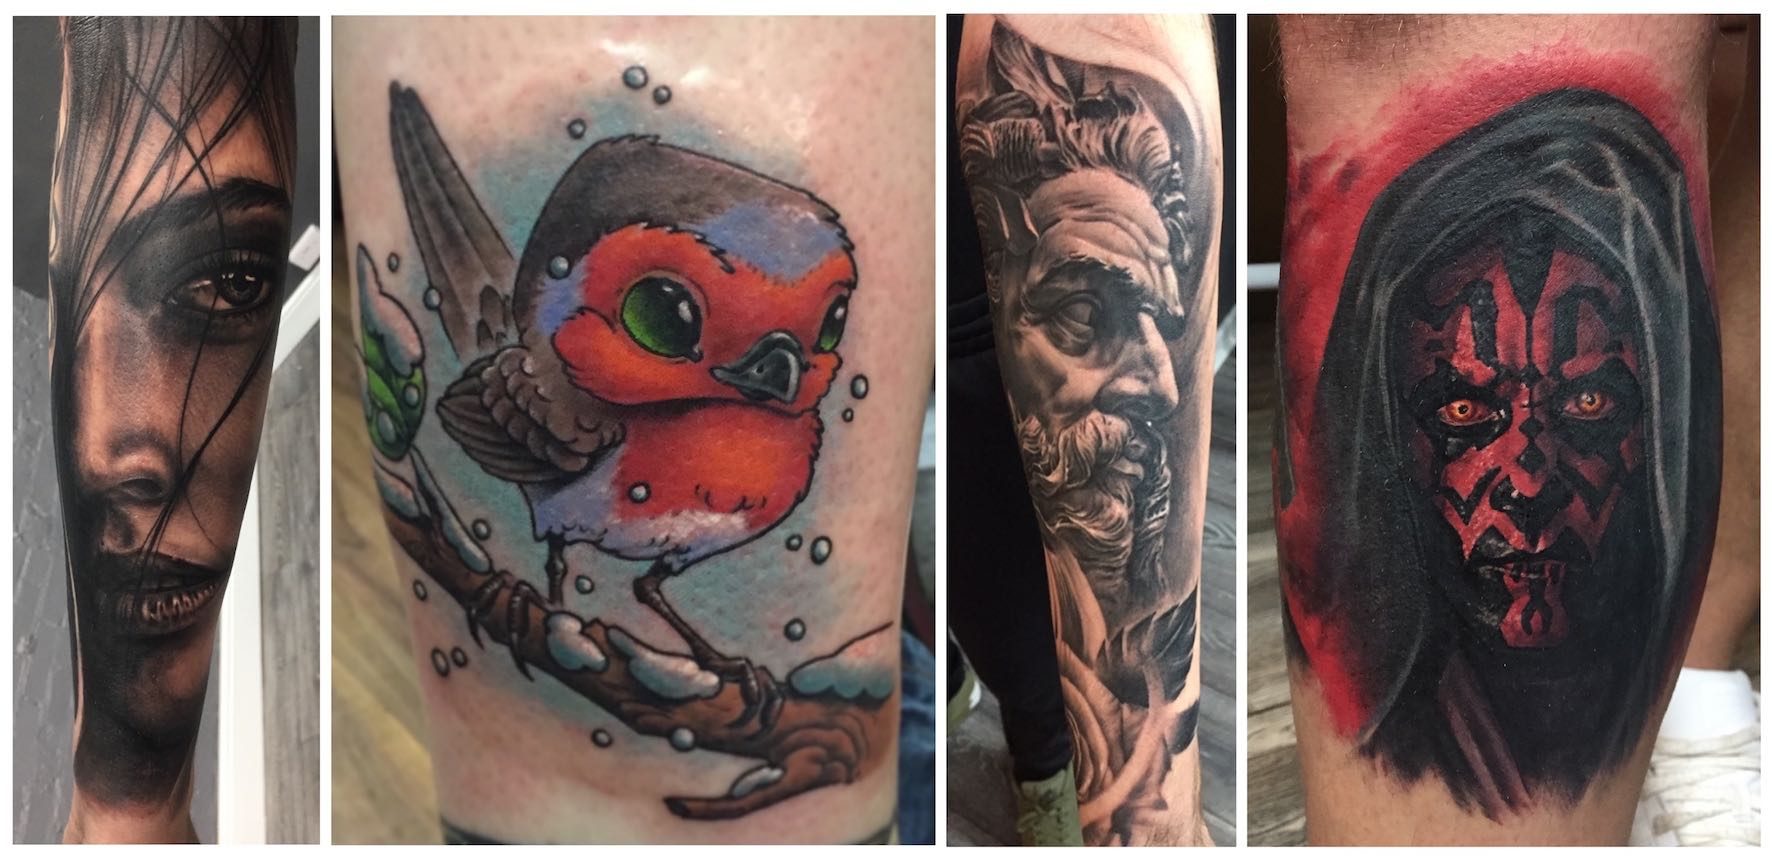 Tattoos done by Dean Clarke